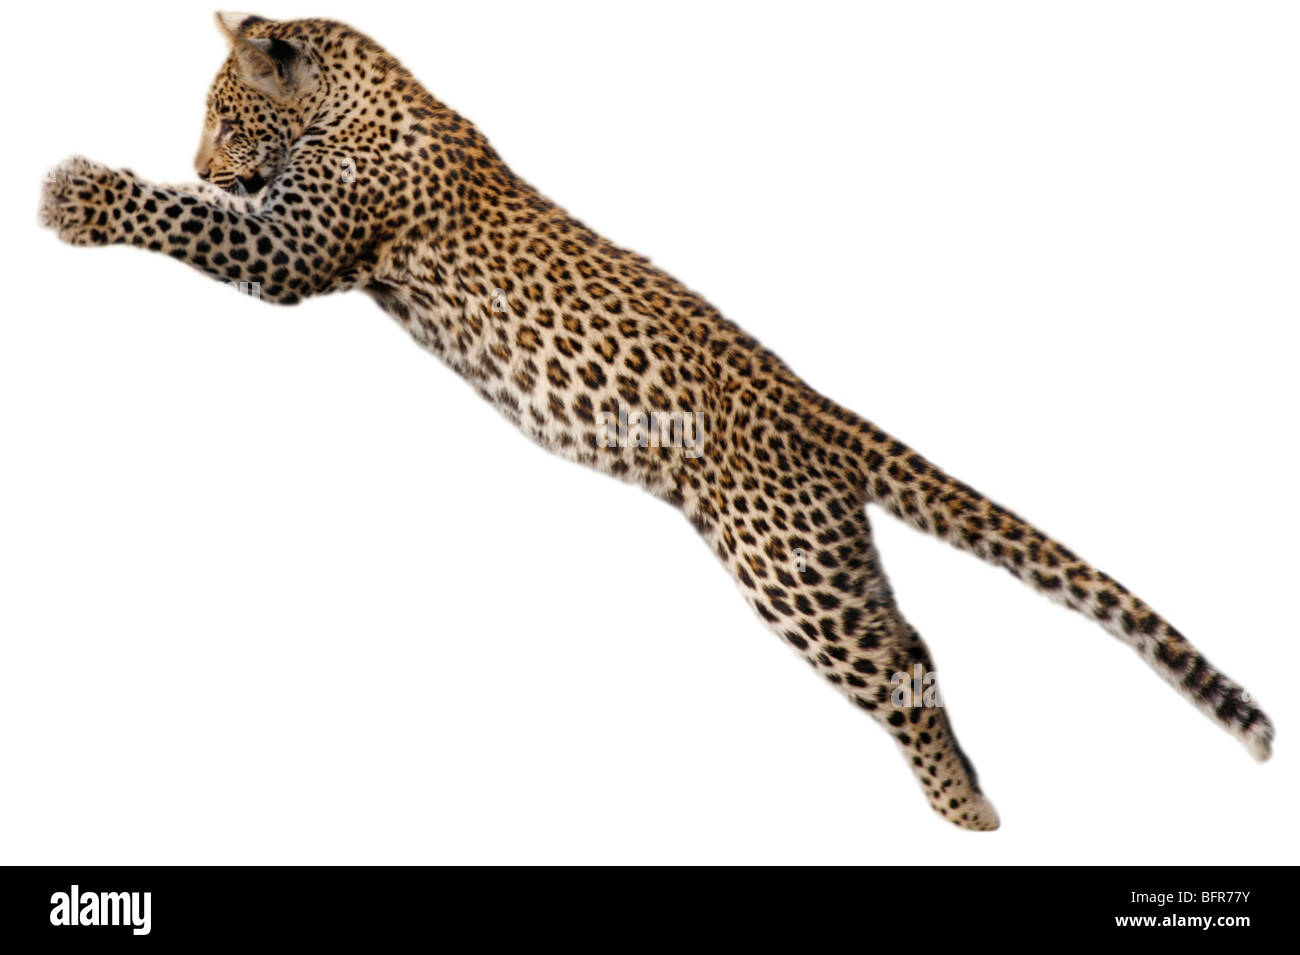 Leopard cub leaping cut-out - Stock Image